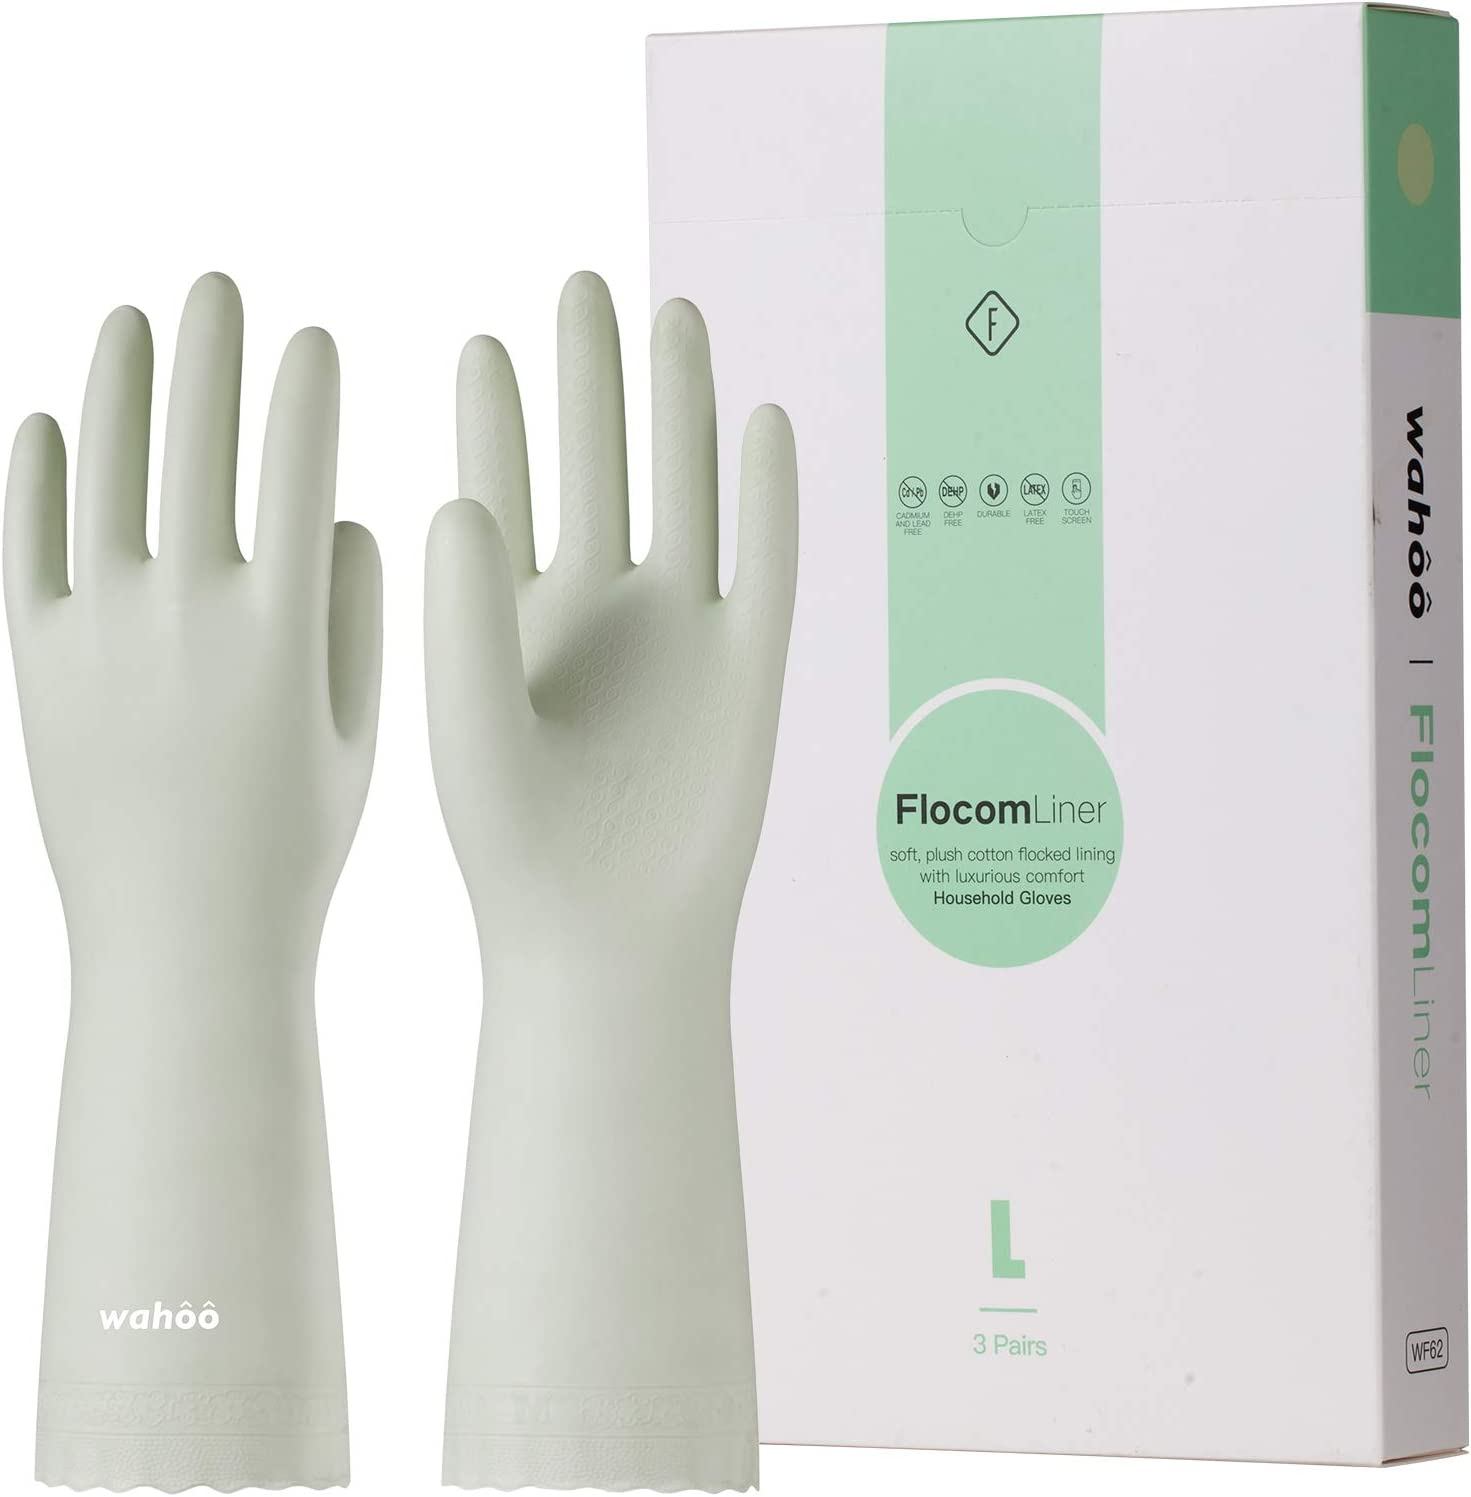 LANON Wahoo 3 Pairs PVC Household Cleaning Gloves, Reusable Dishwashing Gloves with Cotton Flocked Liner, Non-Slip, Medium : Health & Household